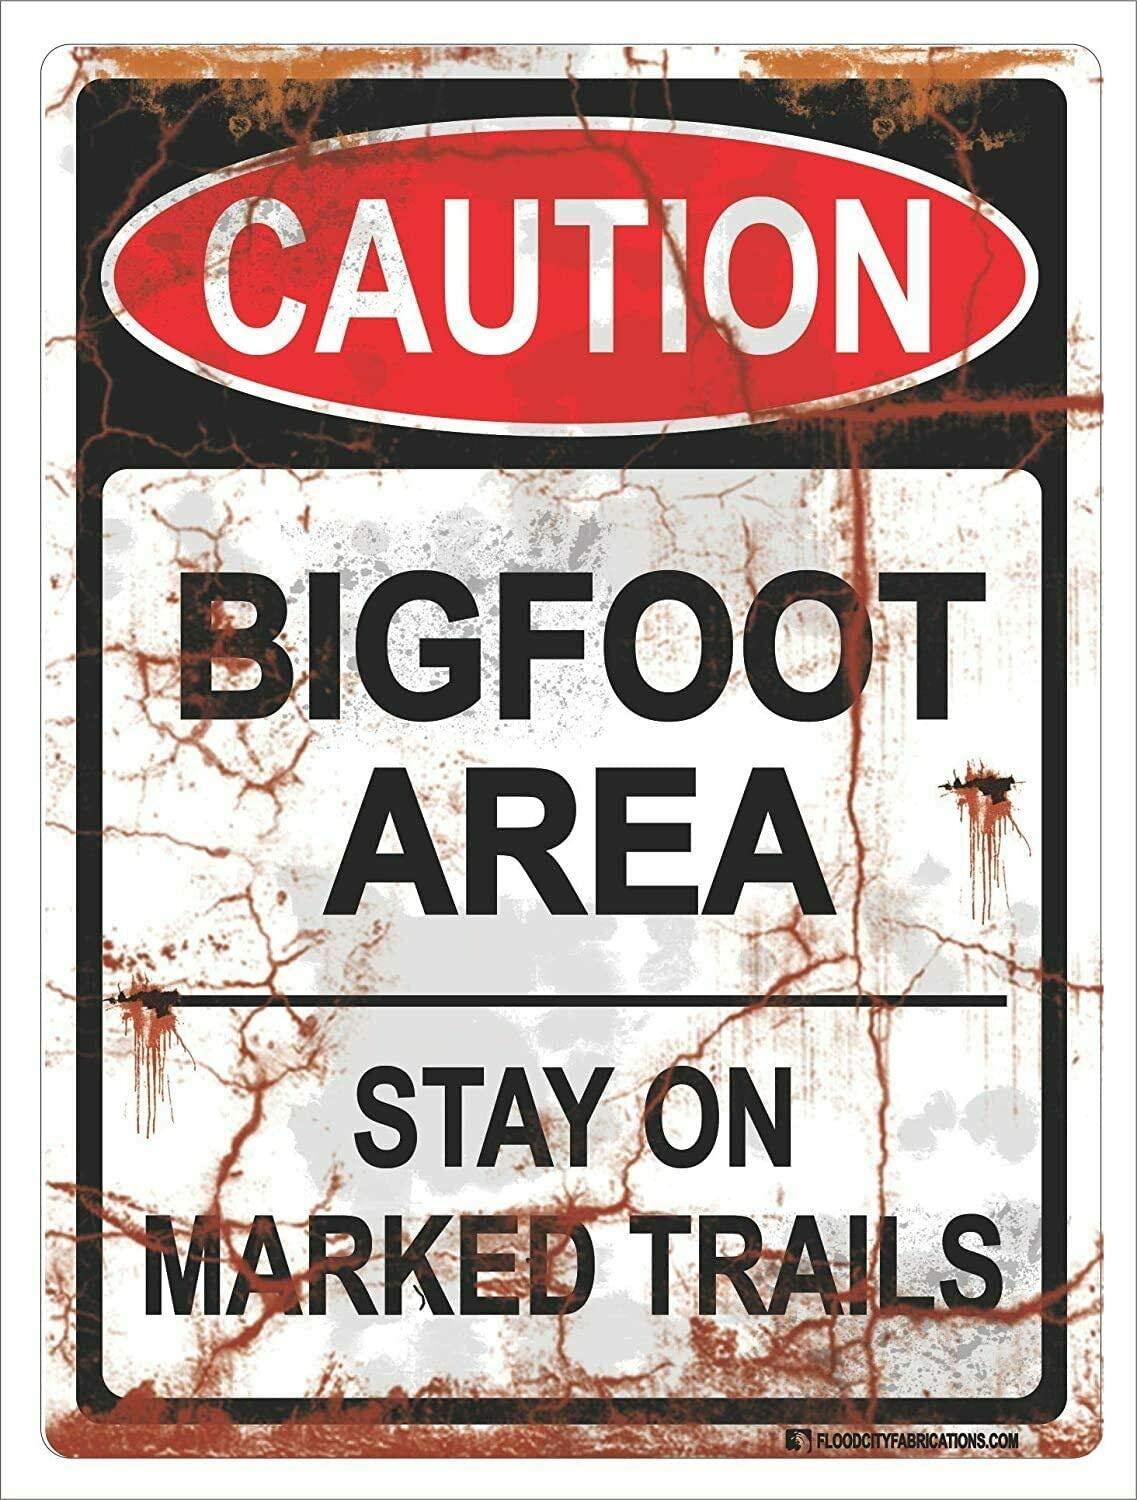 ZMKDLL Caution Bigfoot Area Stay Trails Marked On Don't miss the campaign Camping Hiking Free shipping